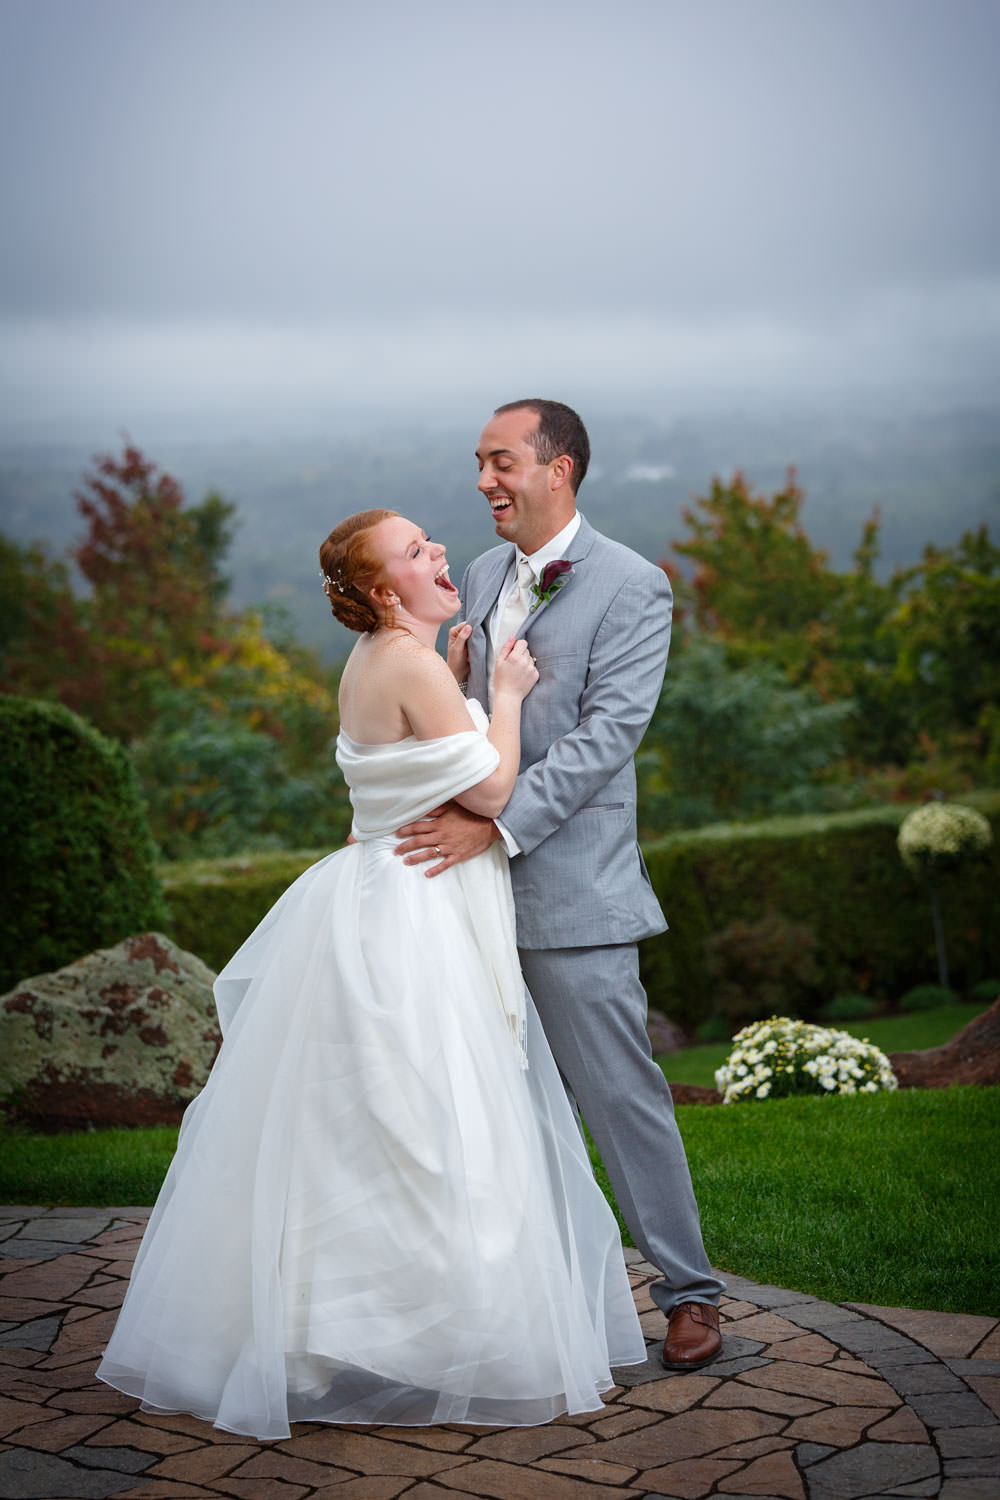 Bride and groom holding each other while laughing and overcast sky in background.